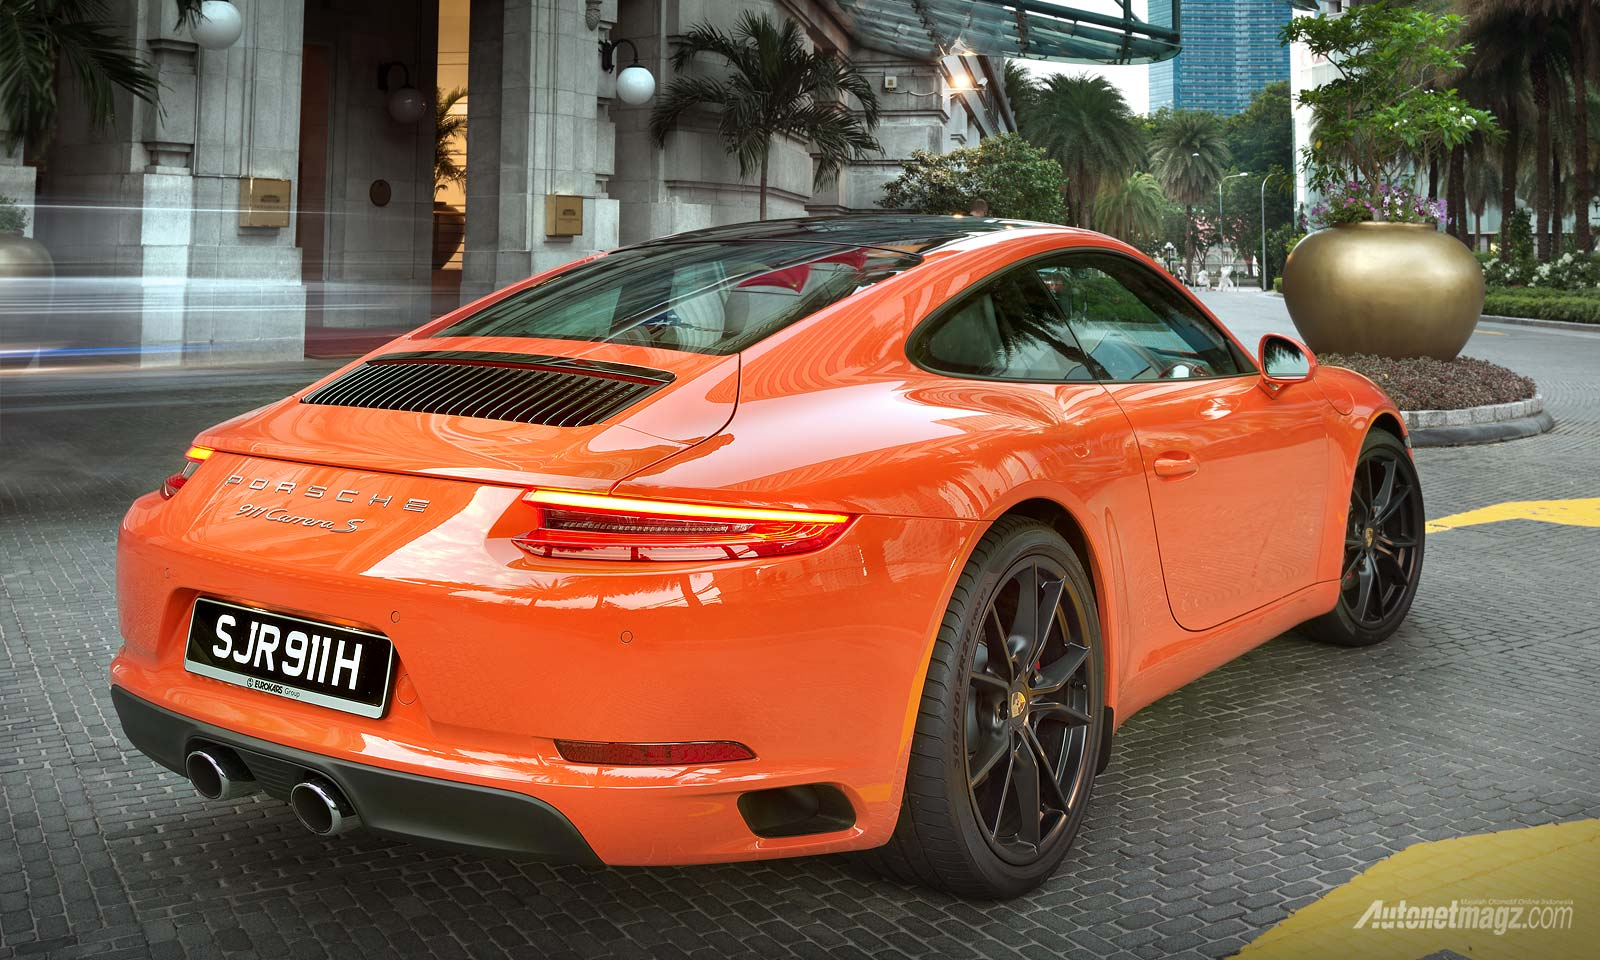 International, 2016 Porsche 911 Carrera S: First Impression Review Porsche 911 Carrera S